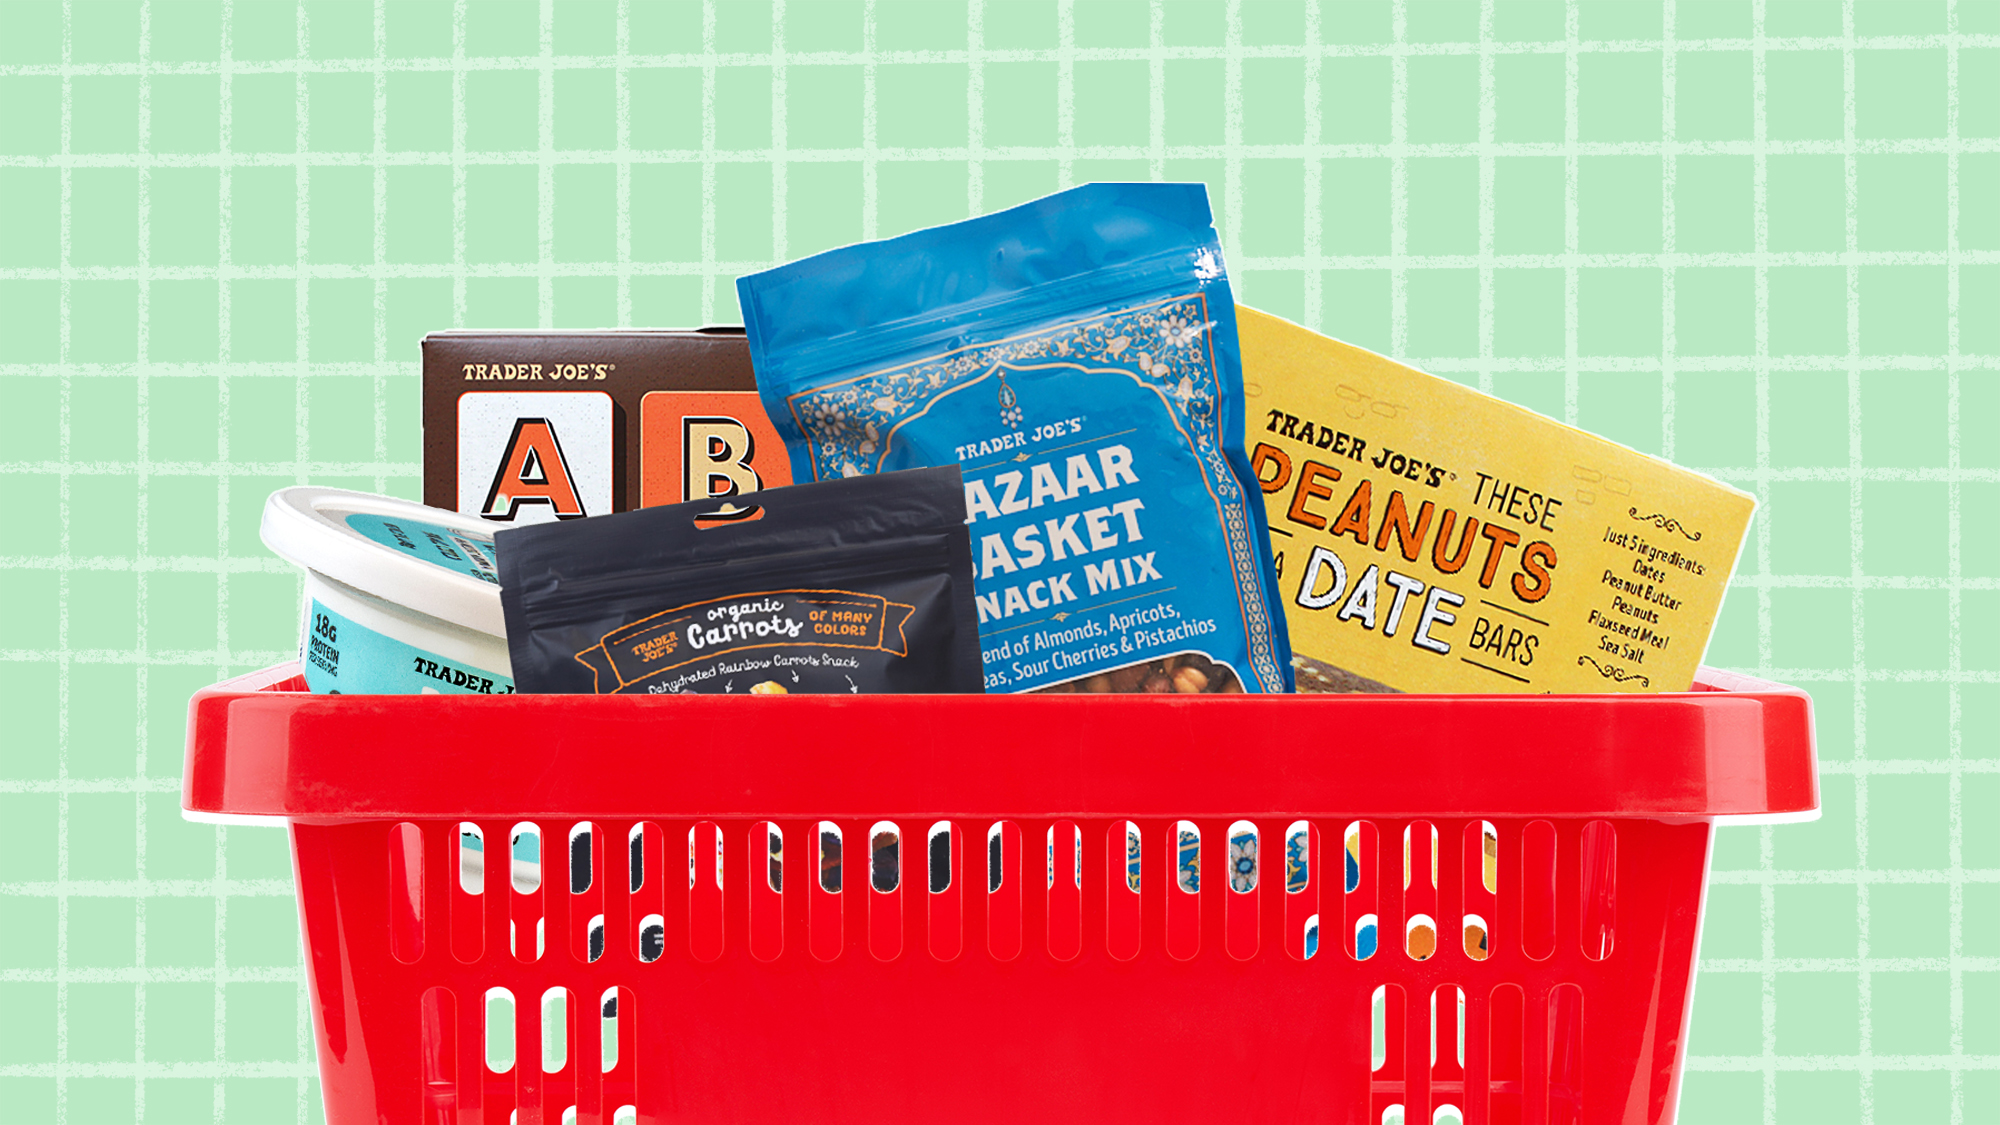 A selection of 5 trader Joe's snacks in a grocery basket